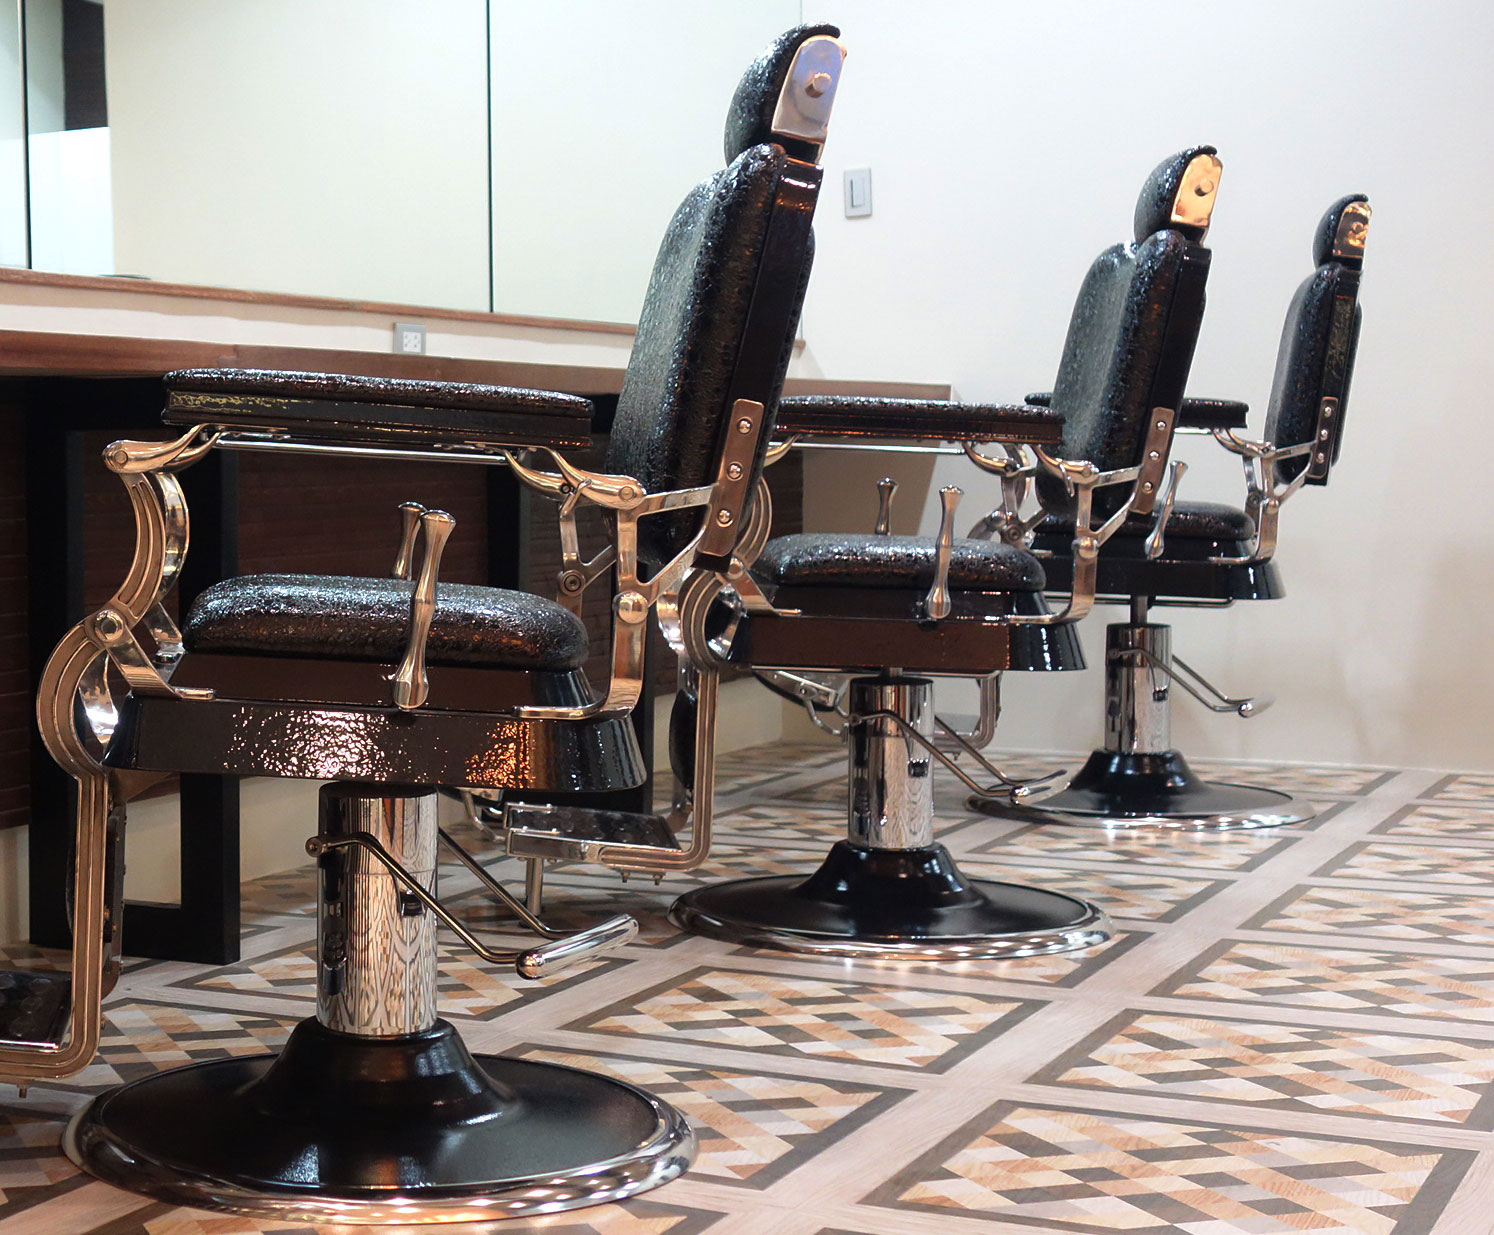 Old School Barber Chair 8 Fascinating Things About Going To A Barbershop Run By